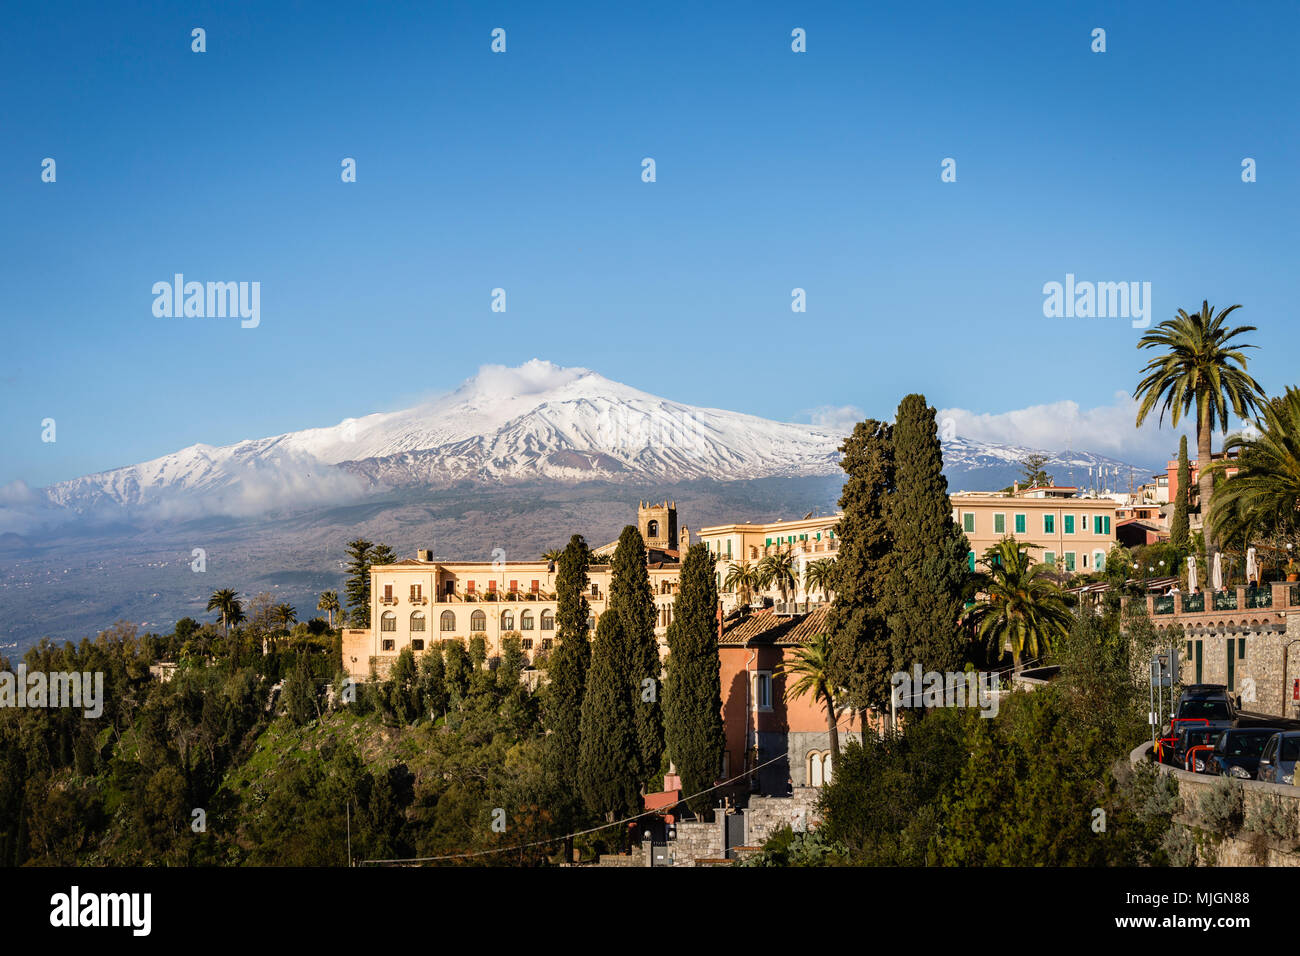 Town of Taormina with Mount Etna, Sicily. - Stock Image